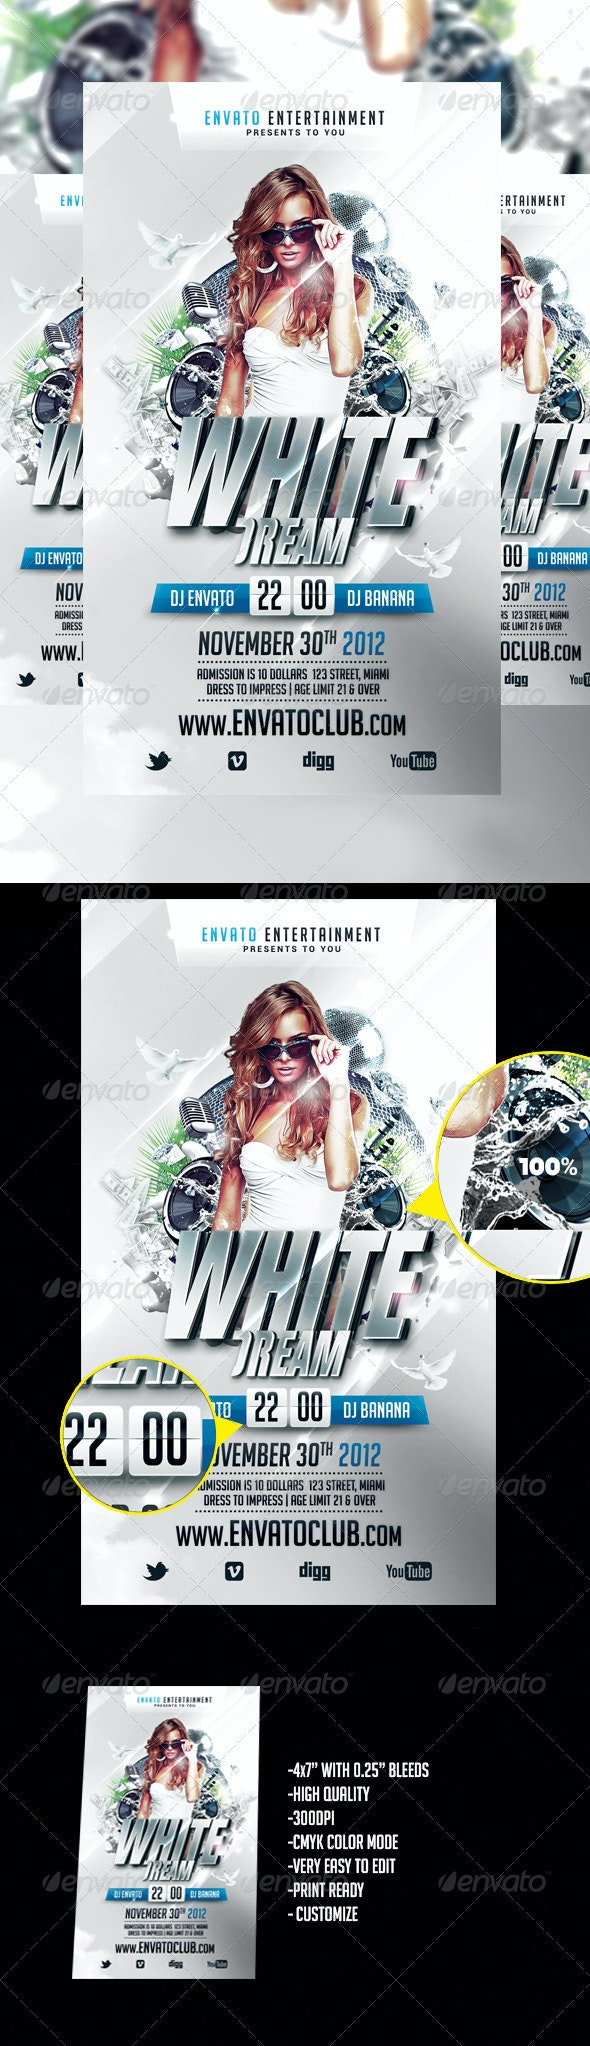 White Dream Flyer - Clubs & Parties Events